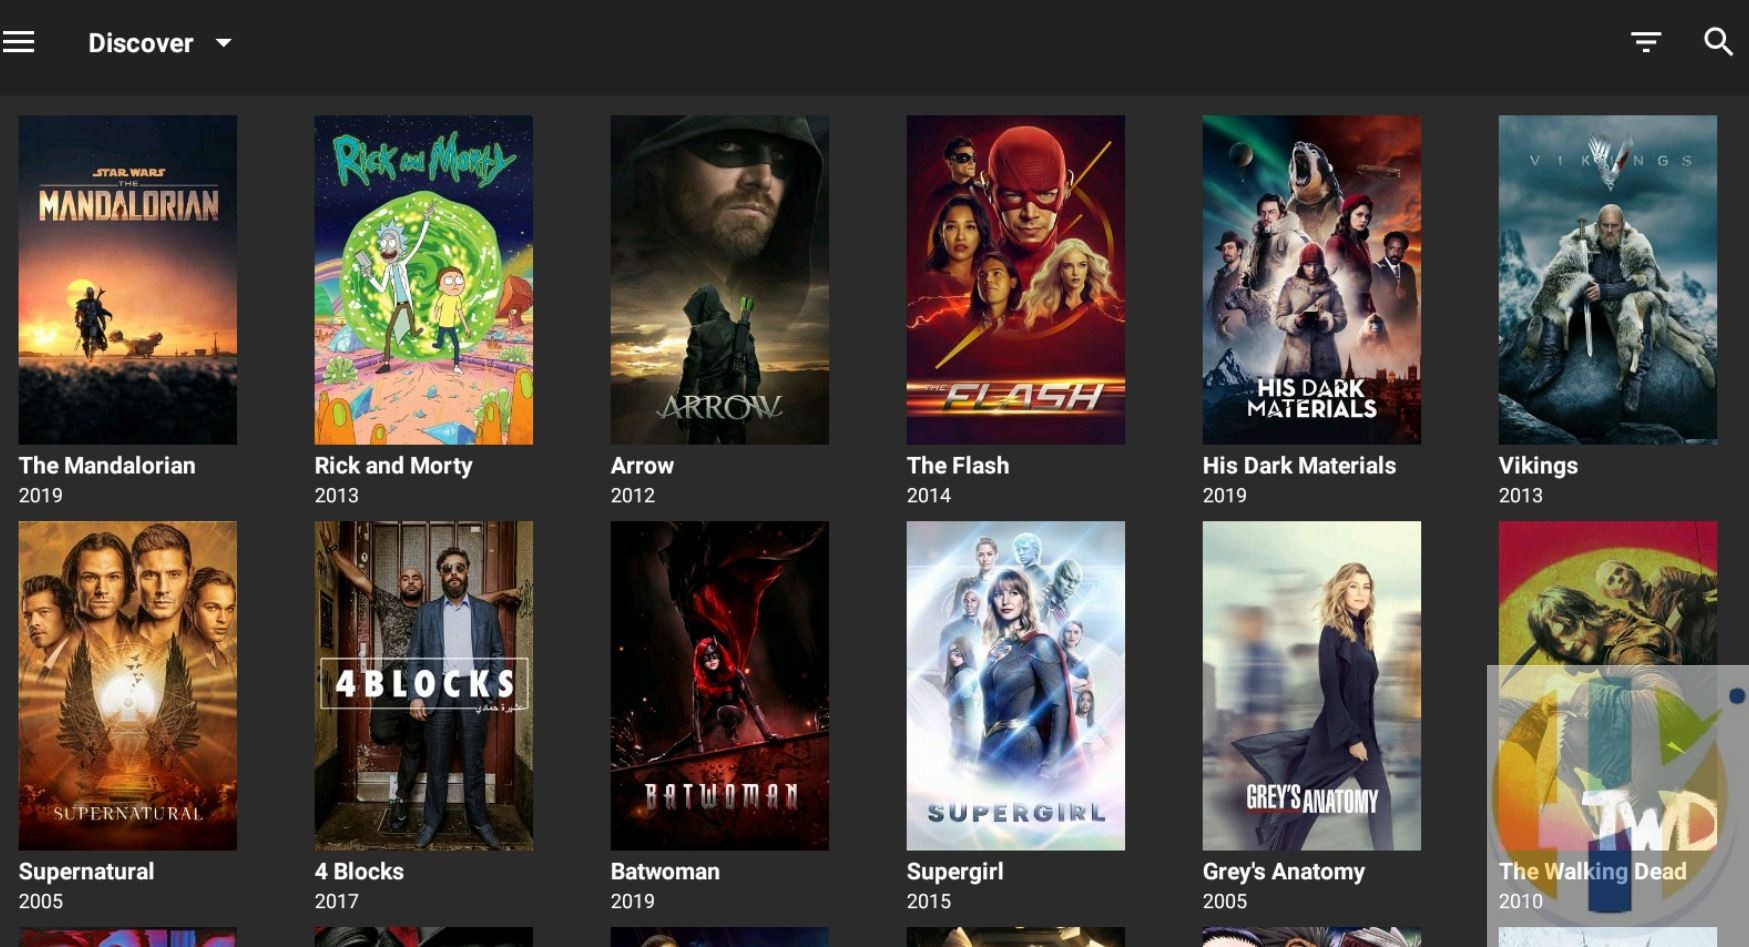 Netflix APK 7.59.0 Mod Download Latest Version with Free Movies TV Shows -  Entertainment APK